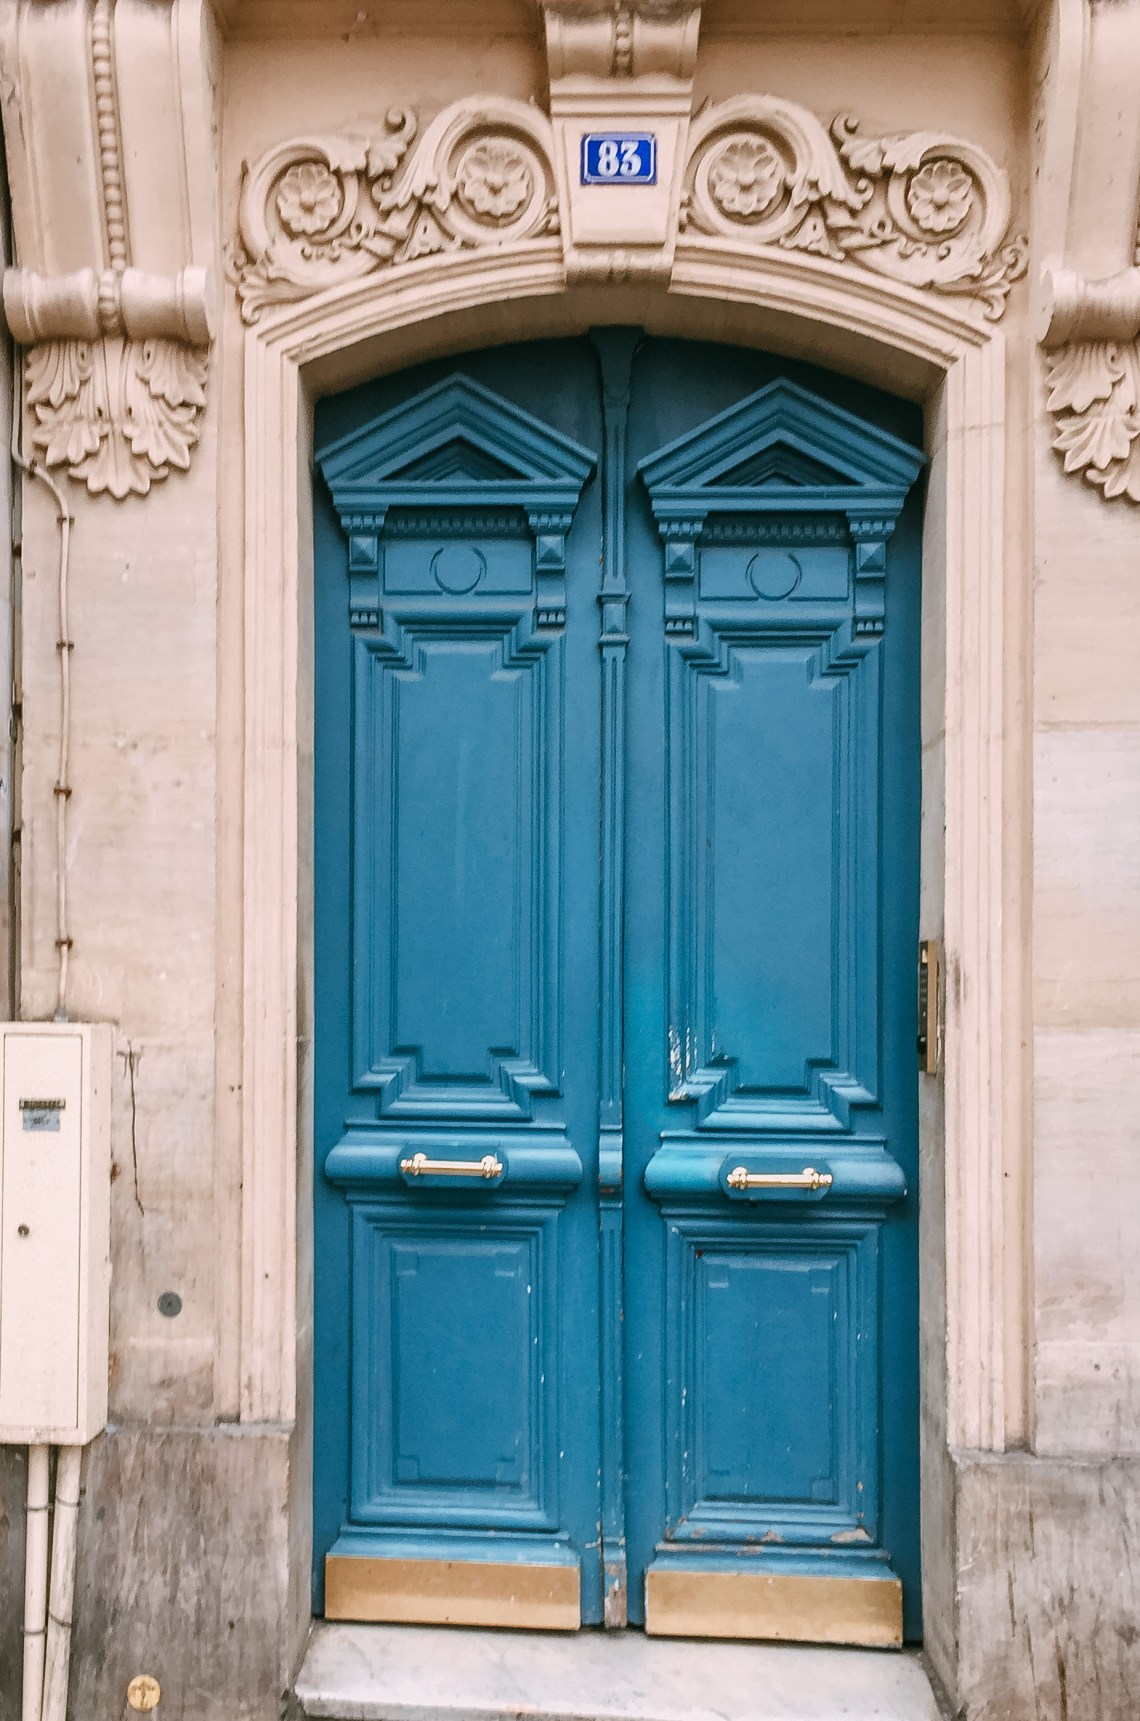 Doors in Paris Worldsessed.com